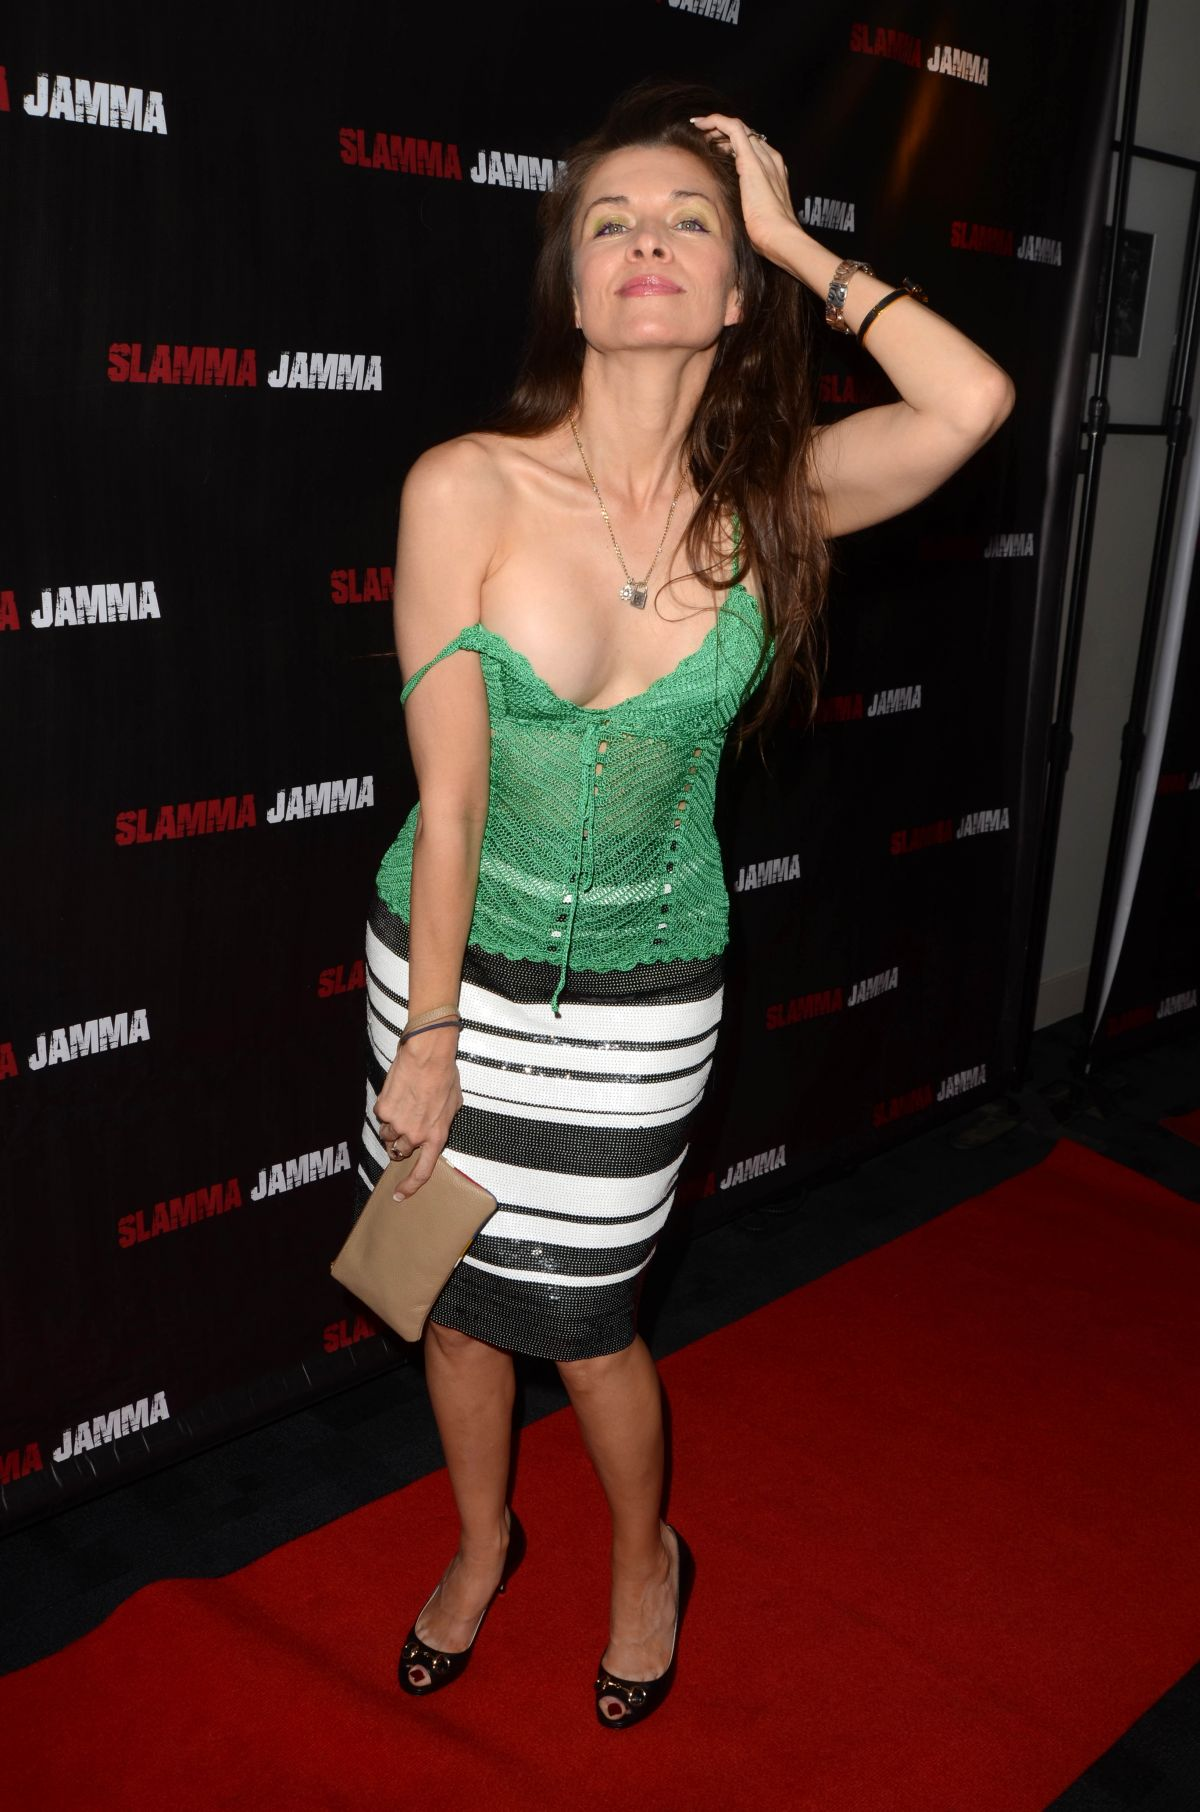 Alicia Arden At Slamma Jamma Screening In Los Angeles 06